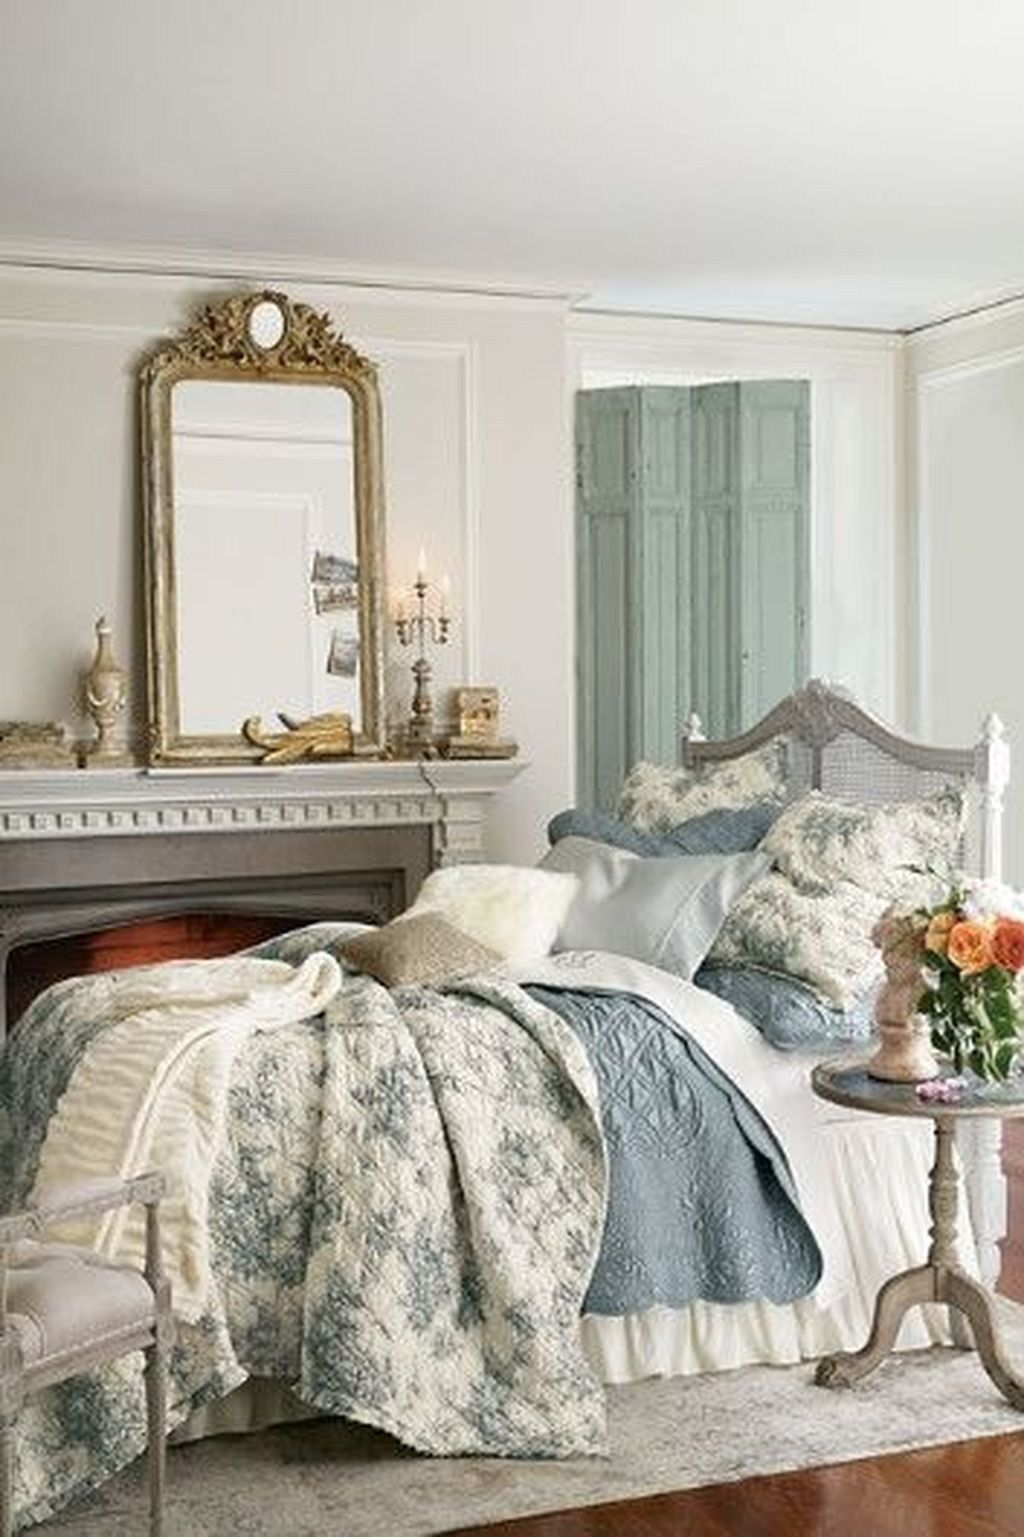 Modern French Country Bedroom Frenchmodernhome Home Decor Bedroom Master Bedrooms Decor Country Bedroom Design